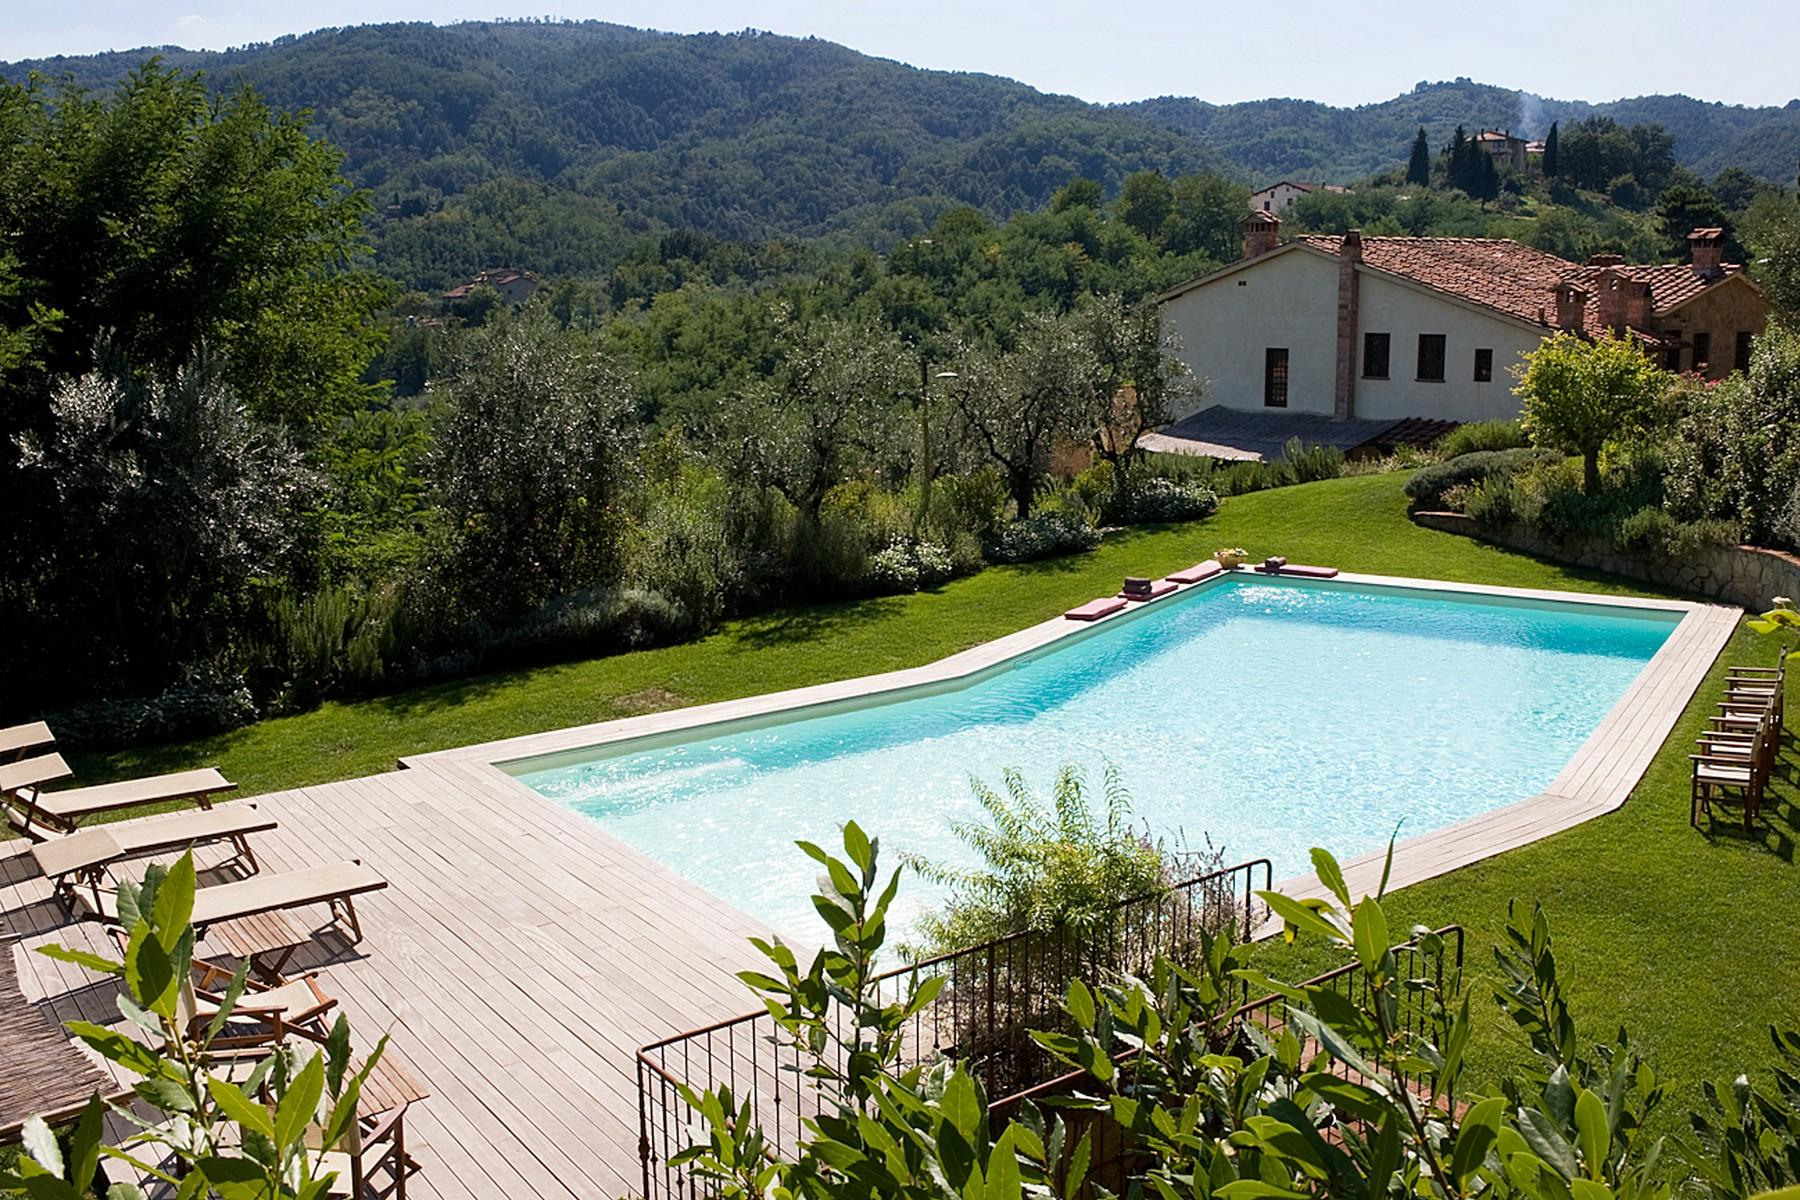 Farmhouse for sale in the Tuscan hills - 17